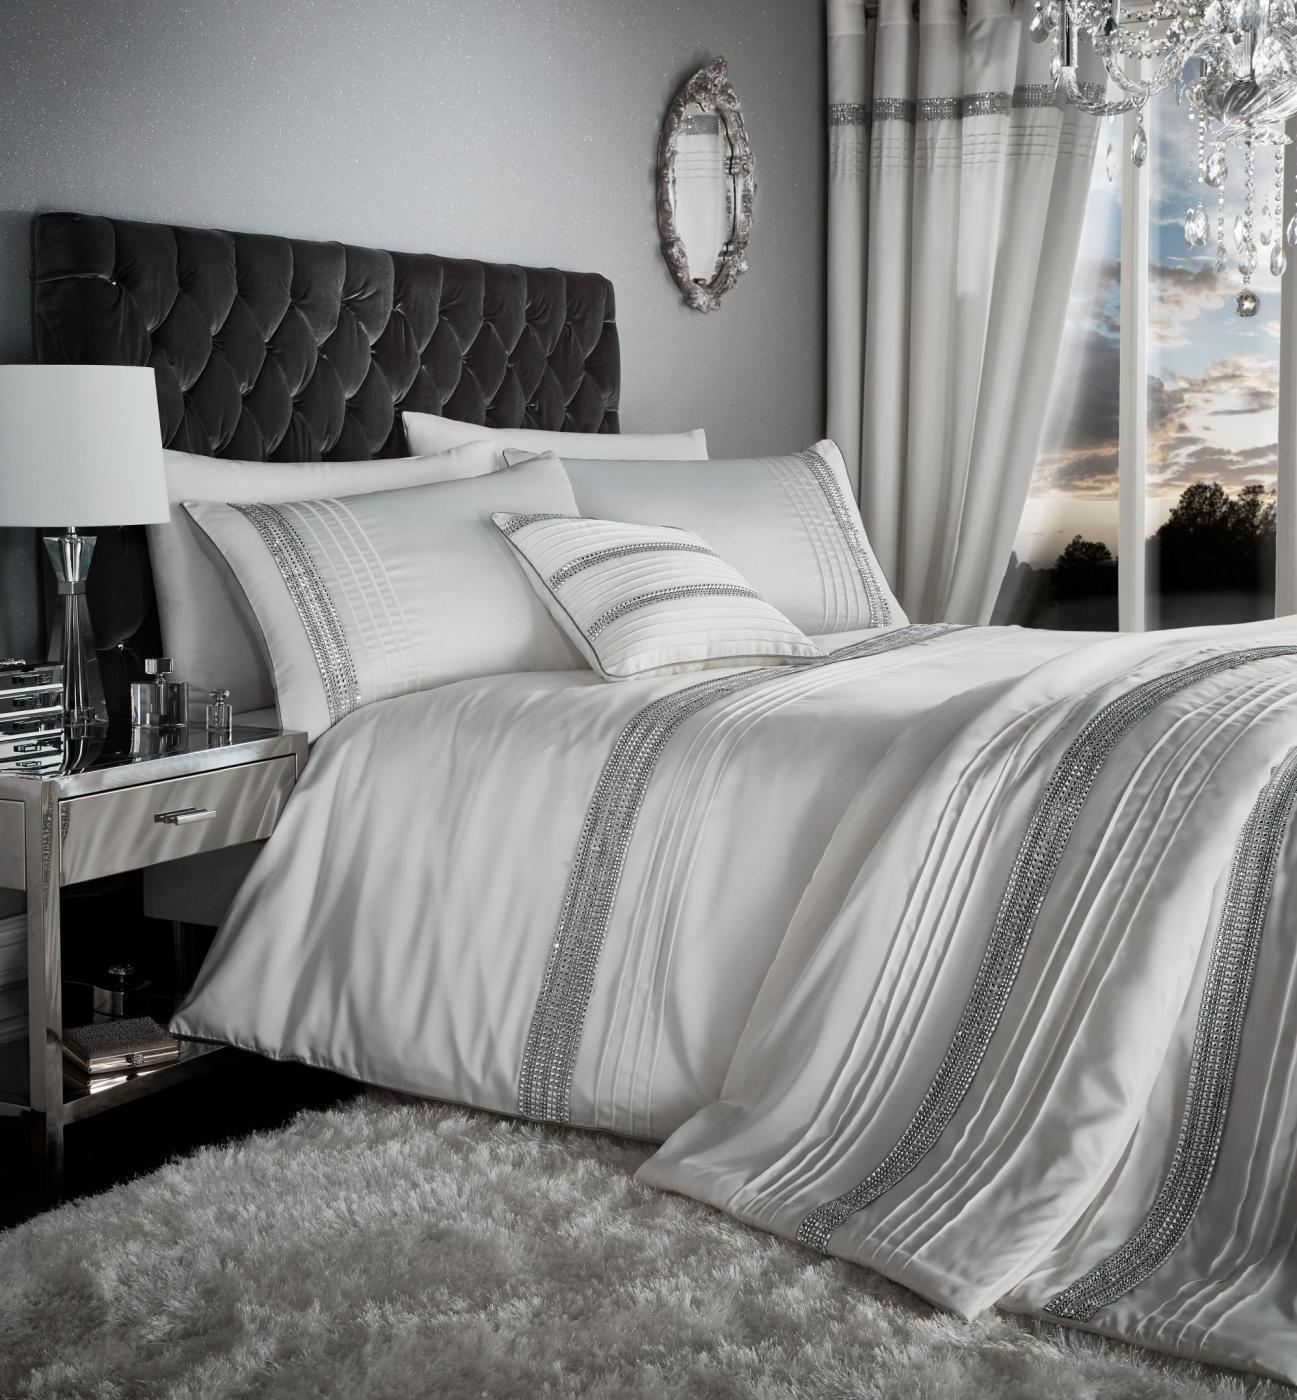 Diamante Duvet Cover Catherine Lansfield Bedding Bed Set